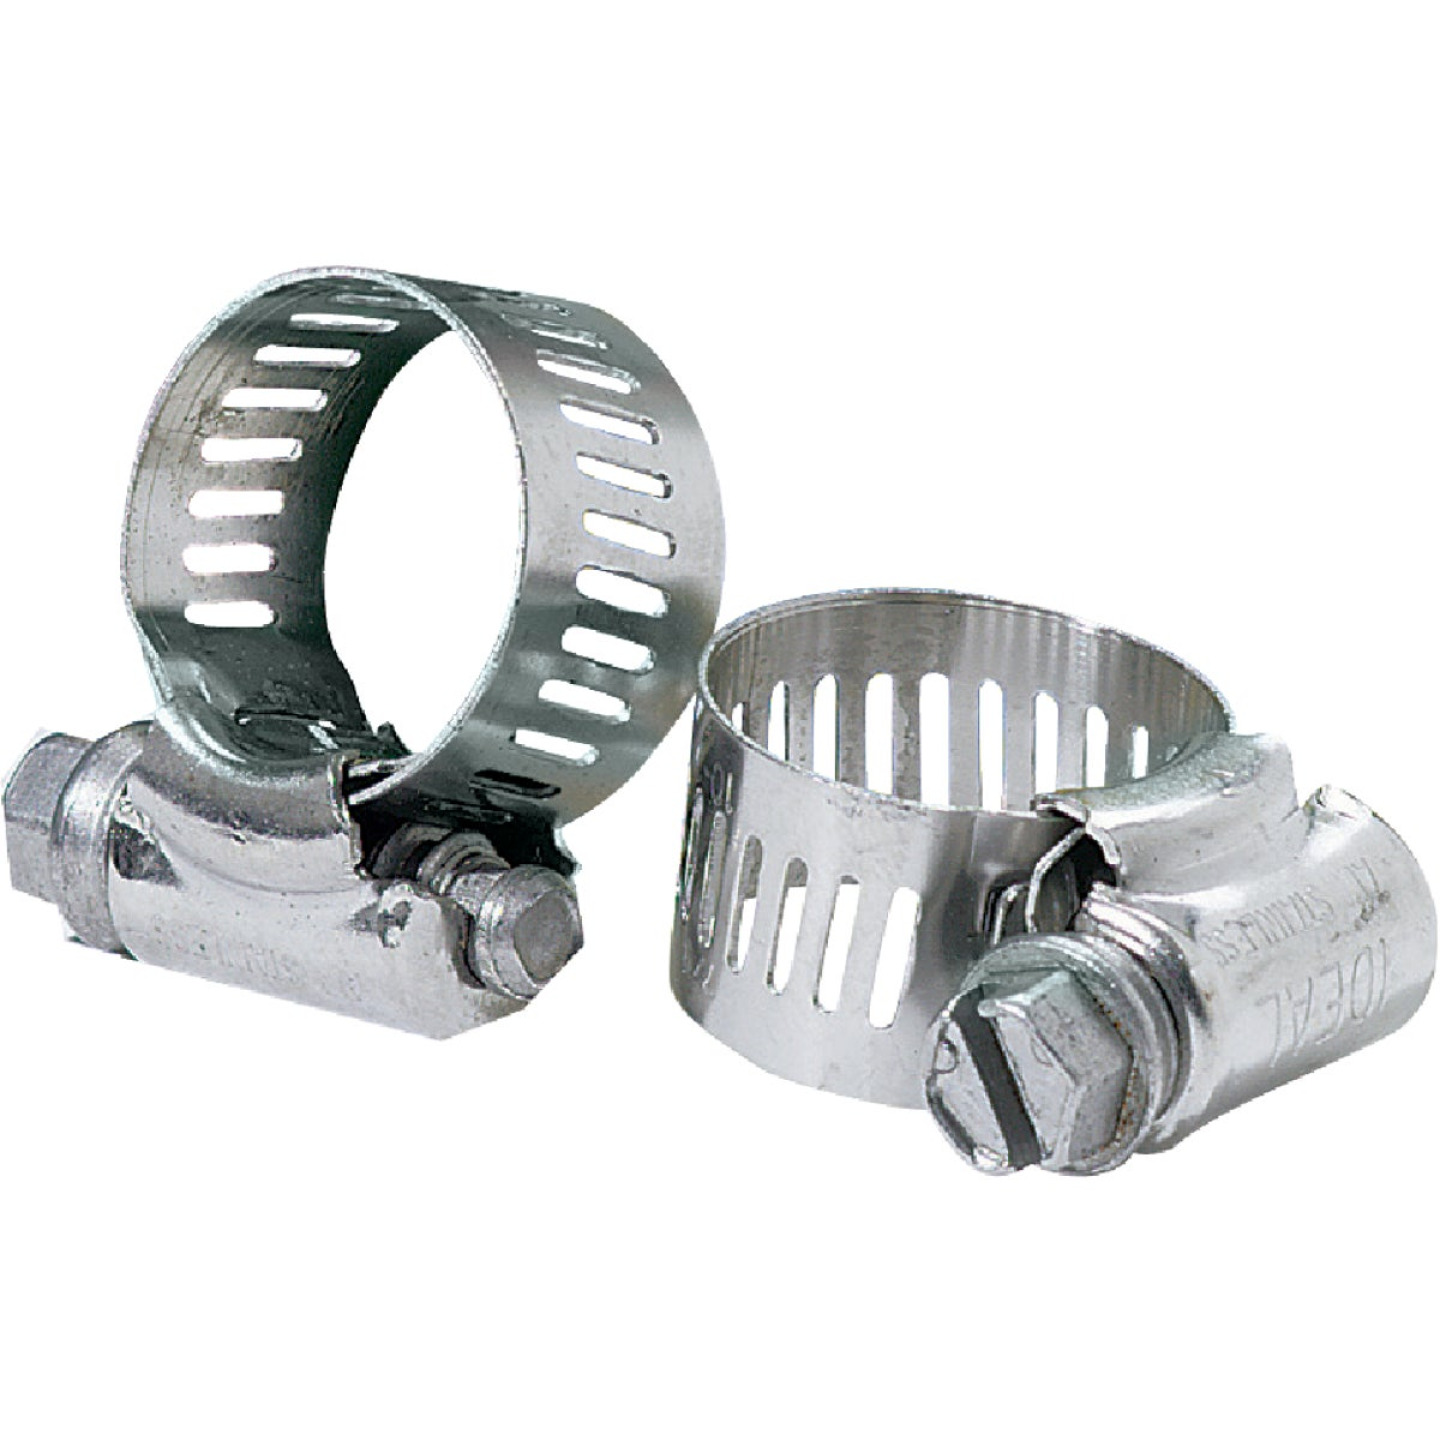 Ideal 2-3/4 In. - 3-3/4 In. 67 All Stainless Steel Hose Clamp Image 1